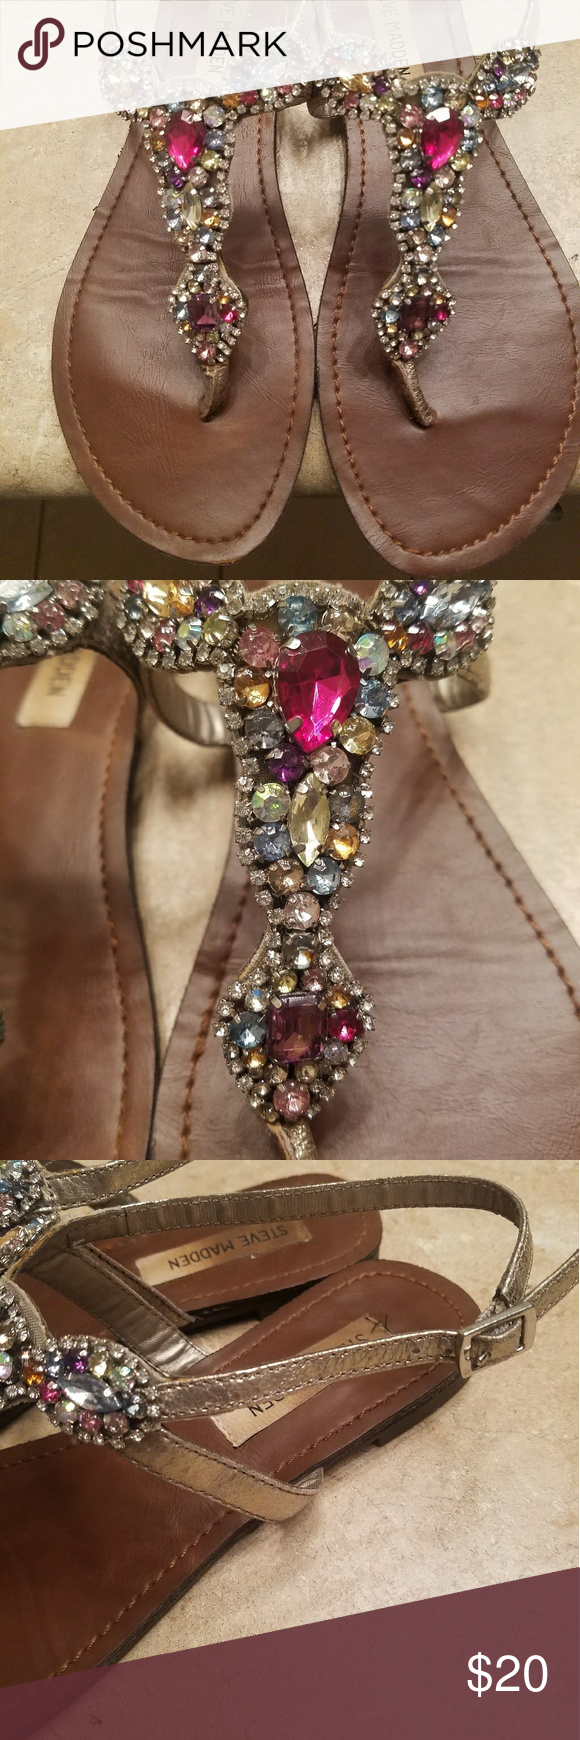 Steve Madden jeweled sandals Worn once for an outdoor wedding. Pewter in color with all colors adorning the toe. Smokefree Steve Madden Shoes Sandals